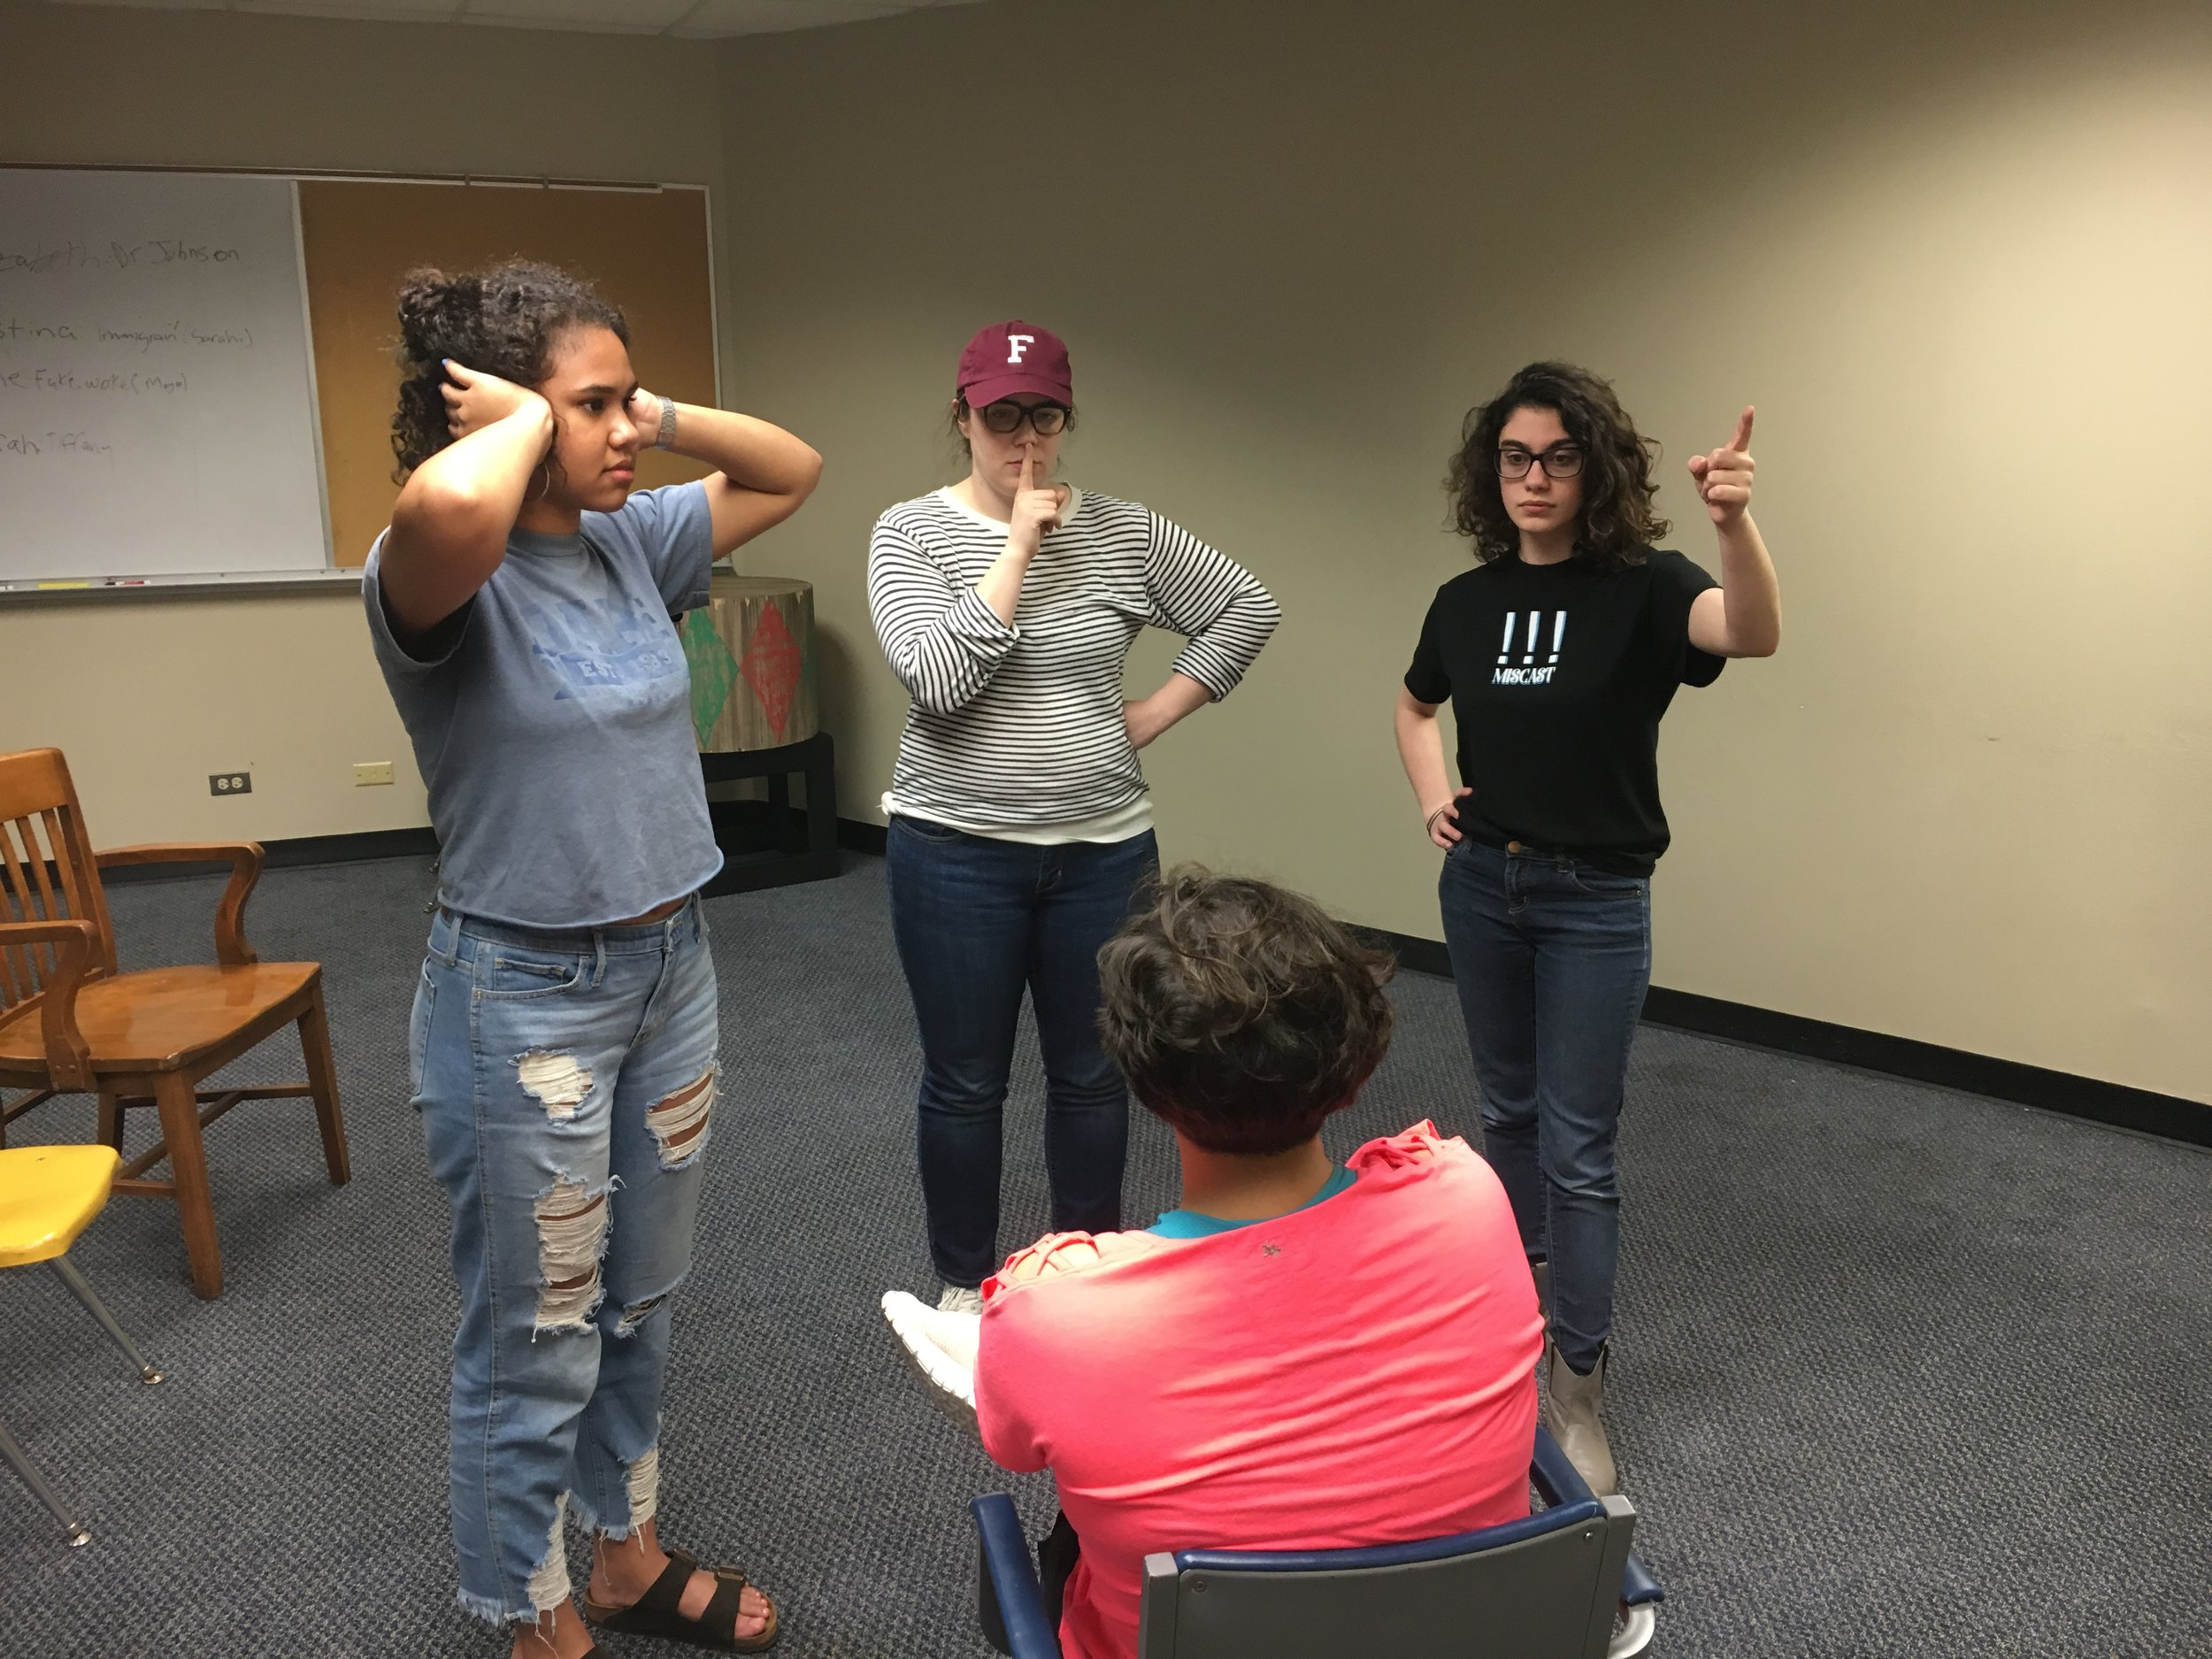 The first image shows what the actors thought the oppression looked like at its worst. The immigrant is in the chair while one of the classmates has her hands over her ears and the other one is pointing for the immigrant to leave. The professor is telling the immigrant to be quiet. After taking a picture and talking about it, they were asked to make the oppression even worse. This is portrayed in the second image.